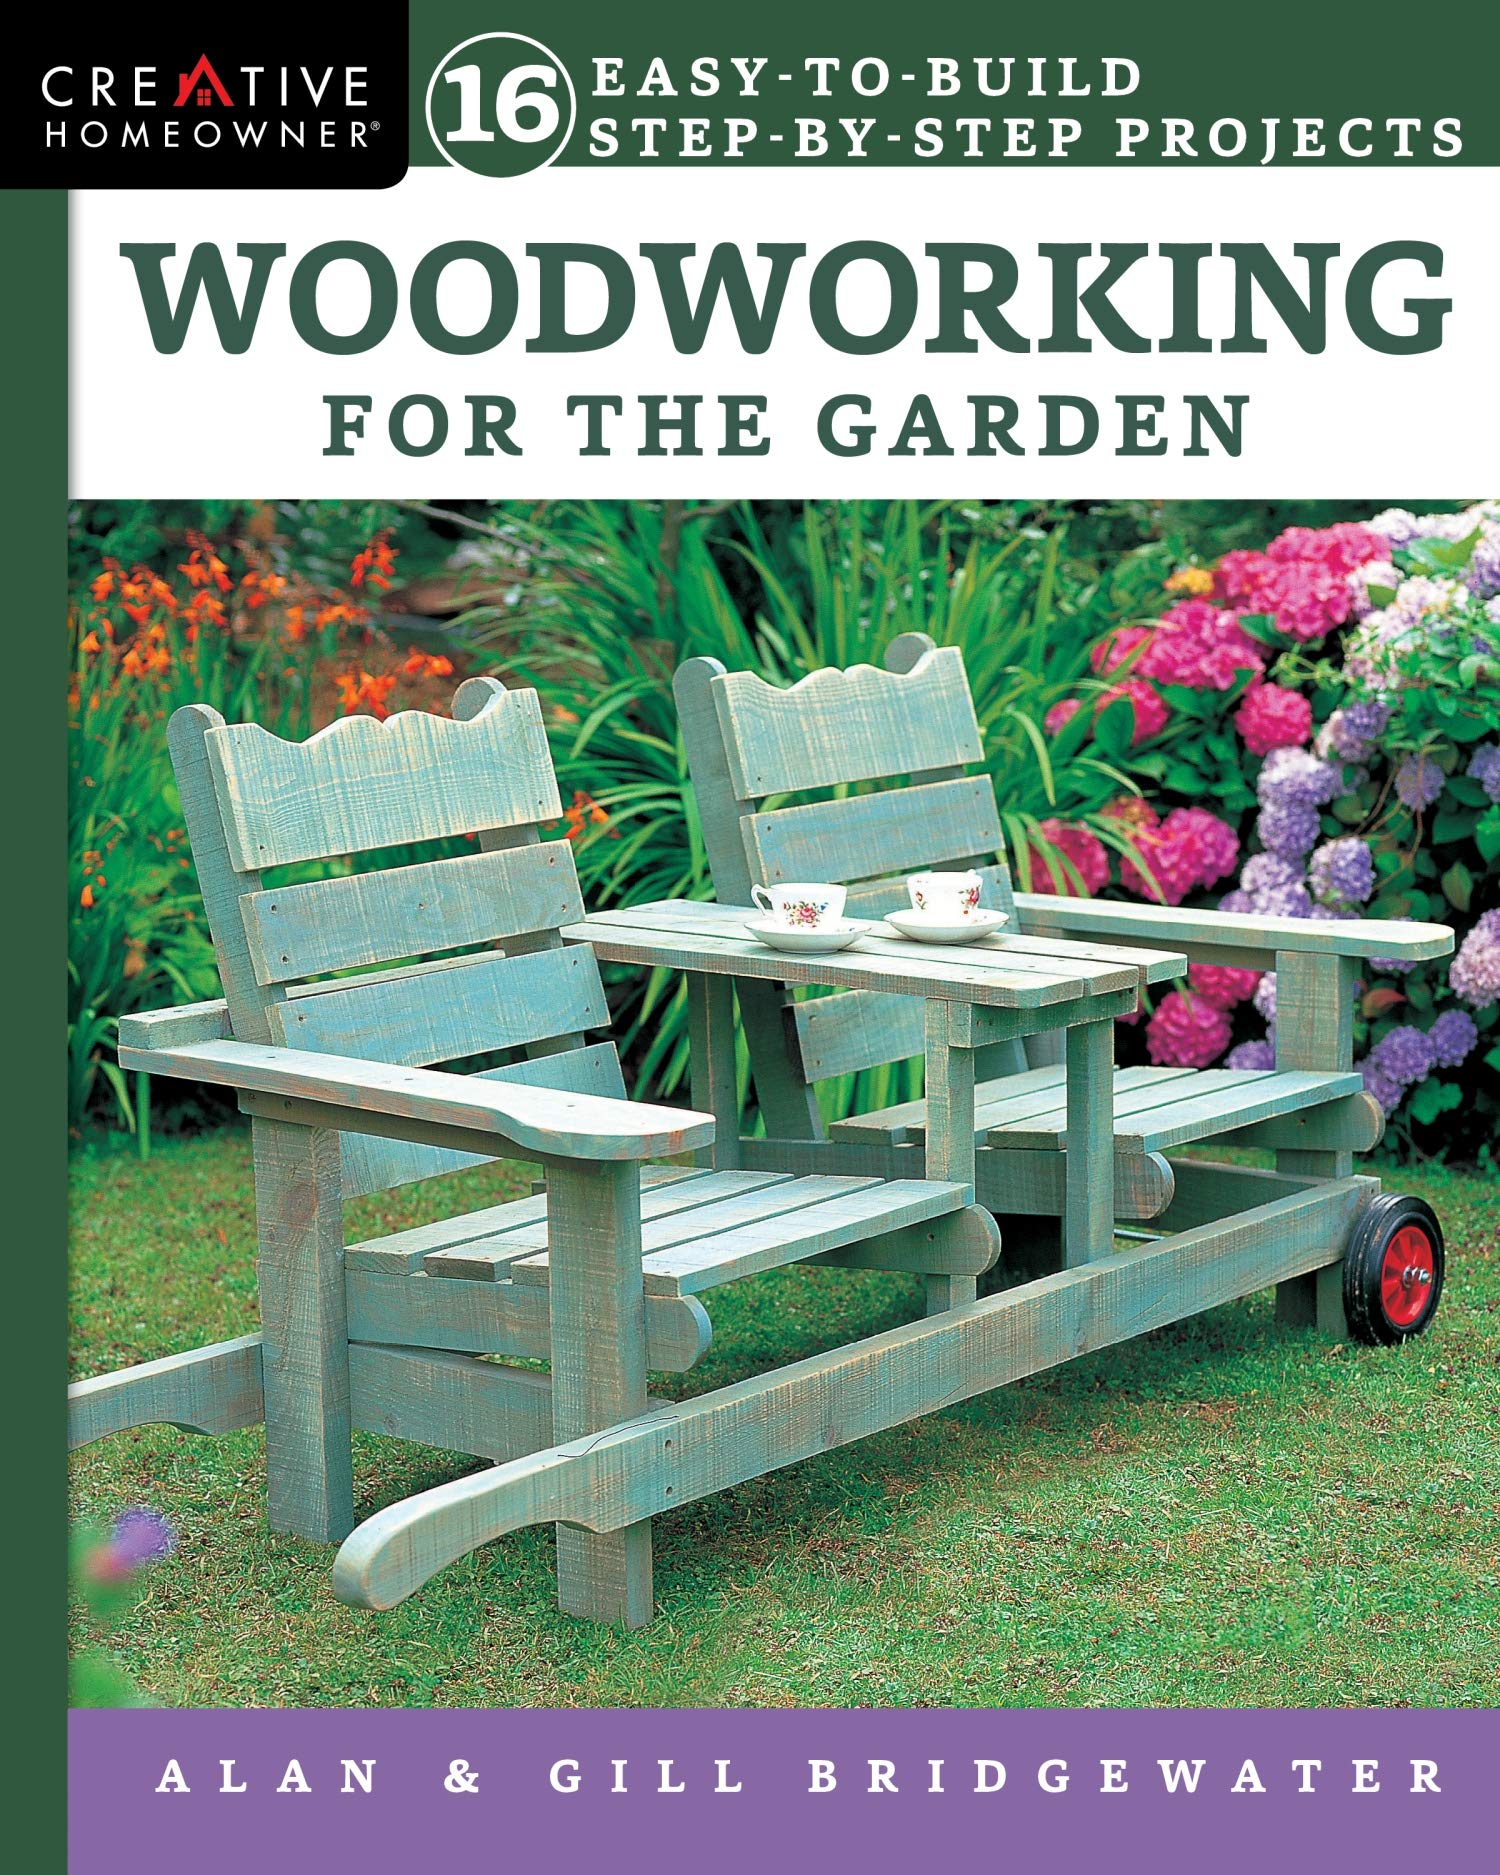 Woodworking For The Garden 16 Easy To Build Step By Step Projects Creative Homeowner Easy To Follow Instructions For Trellises Planters Decking Fences Chairs Tables Sheds Pergolas And More Alan Bridgewater Gill Bridgewater 9781580118309